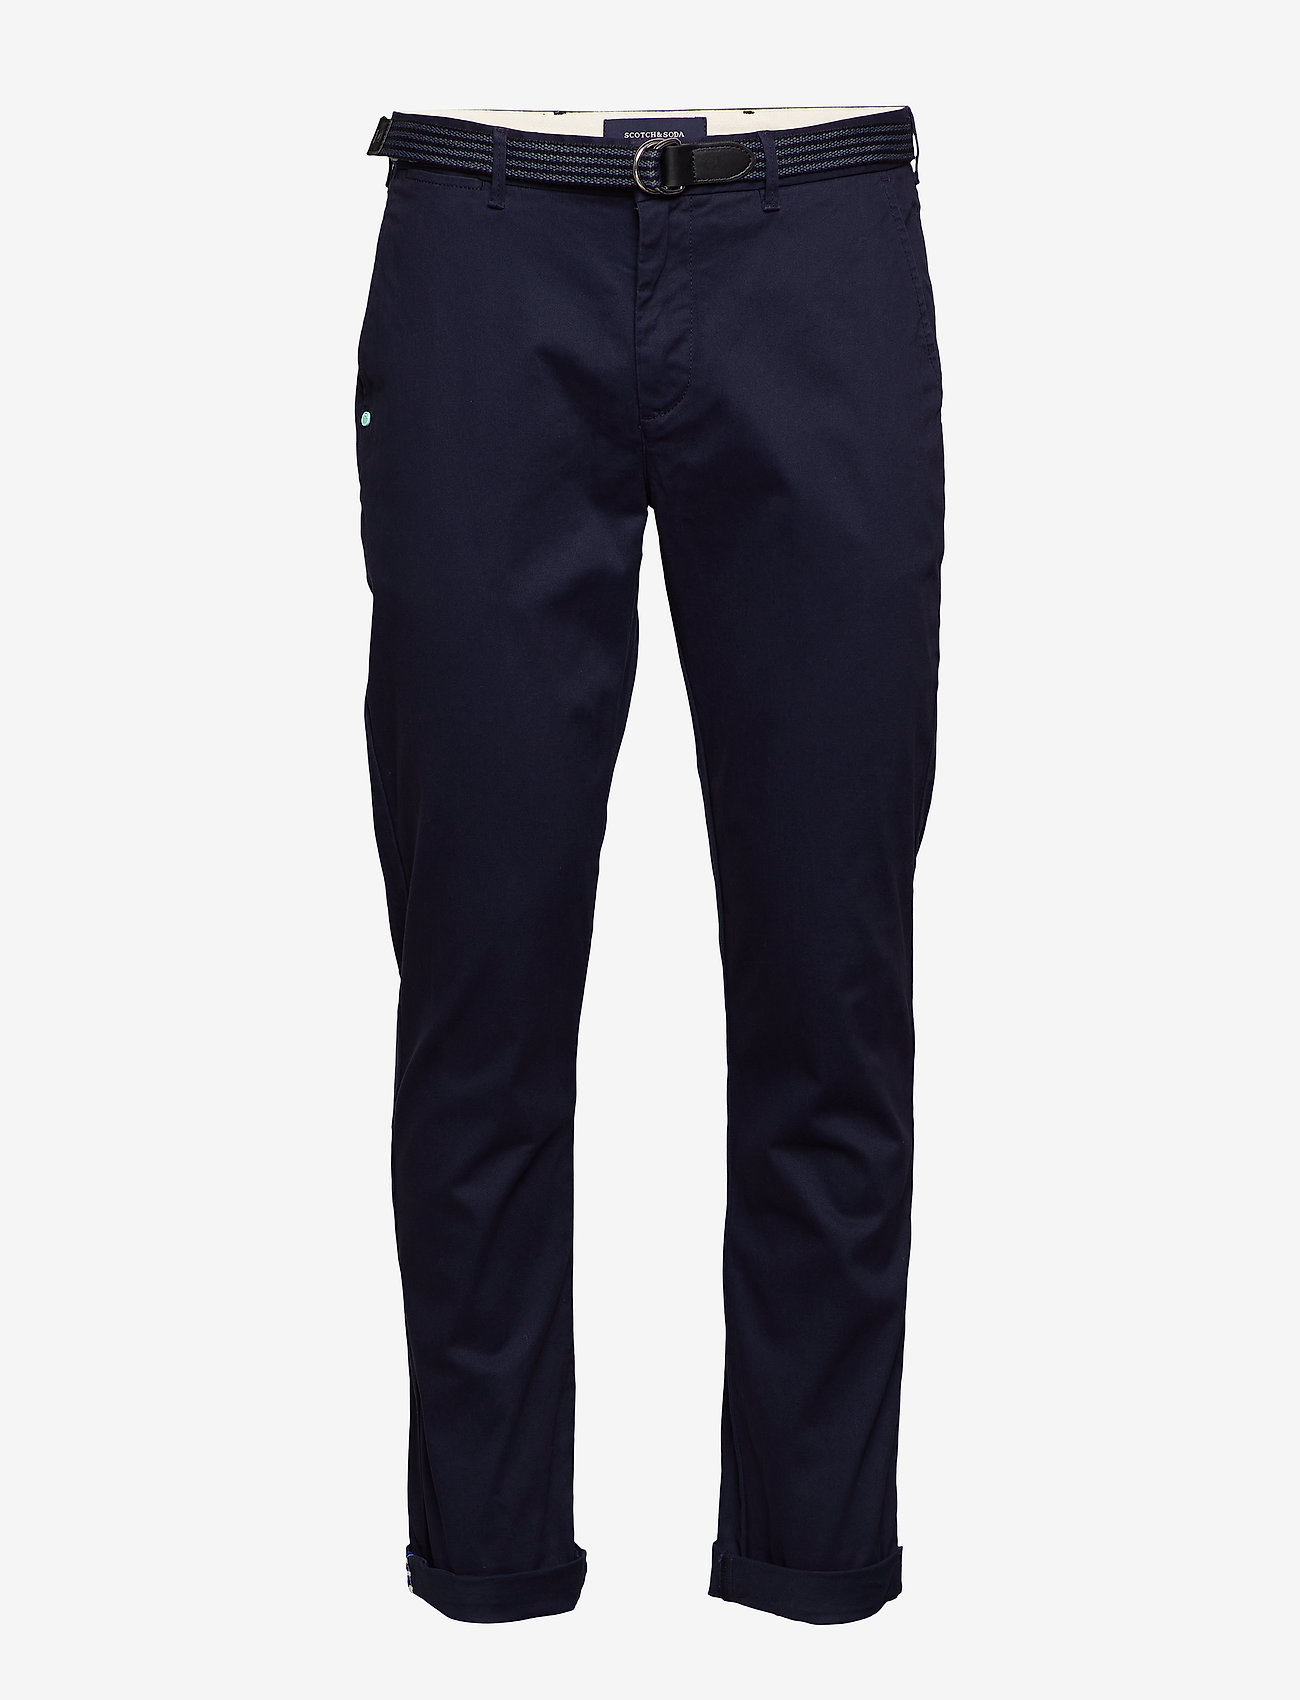 Scotch & Soda - Stuart peached twill chino with give away belt - chinos - midnight - 0